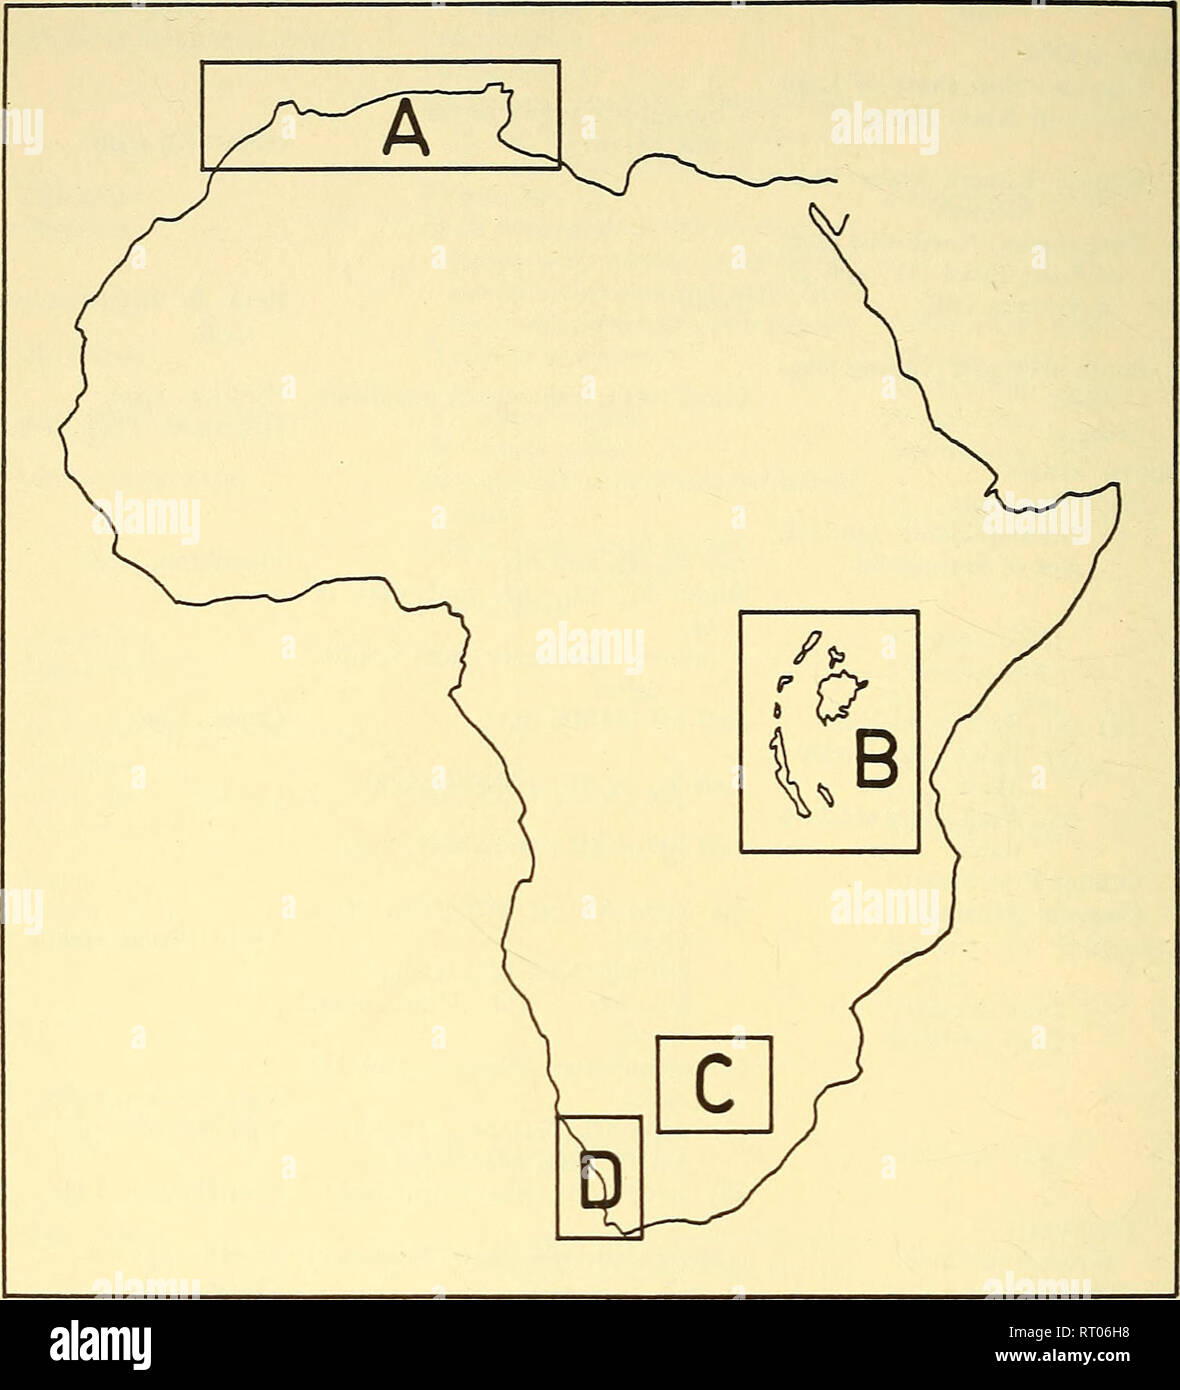 . Annals of the South African Museum = Annale van die Suid-Afrikaanse Museum. Natural history. 284 ANNALS OF THE SOUTH AFRICAN MUSEUM. Fig. 3. Map of Africa indicating major areas of discovery of hipparionids. Details of areas A-C are shown in figs. 4-6, while area D is enlarged in fig. 1. Algeria—figs. 3, 4) occur between two marine horizons, namely, (1) a Burdi- galian one, characterized by its mollusc and echinid fauna and (2) an Upper Miocene Lithotamnium limestone. On this stratigraphical basis, the Hipparion horizon has been dated as Tortonian, i.e. Upper Vindobonian (Late Miocene) immed - Stock Image